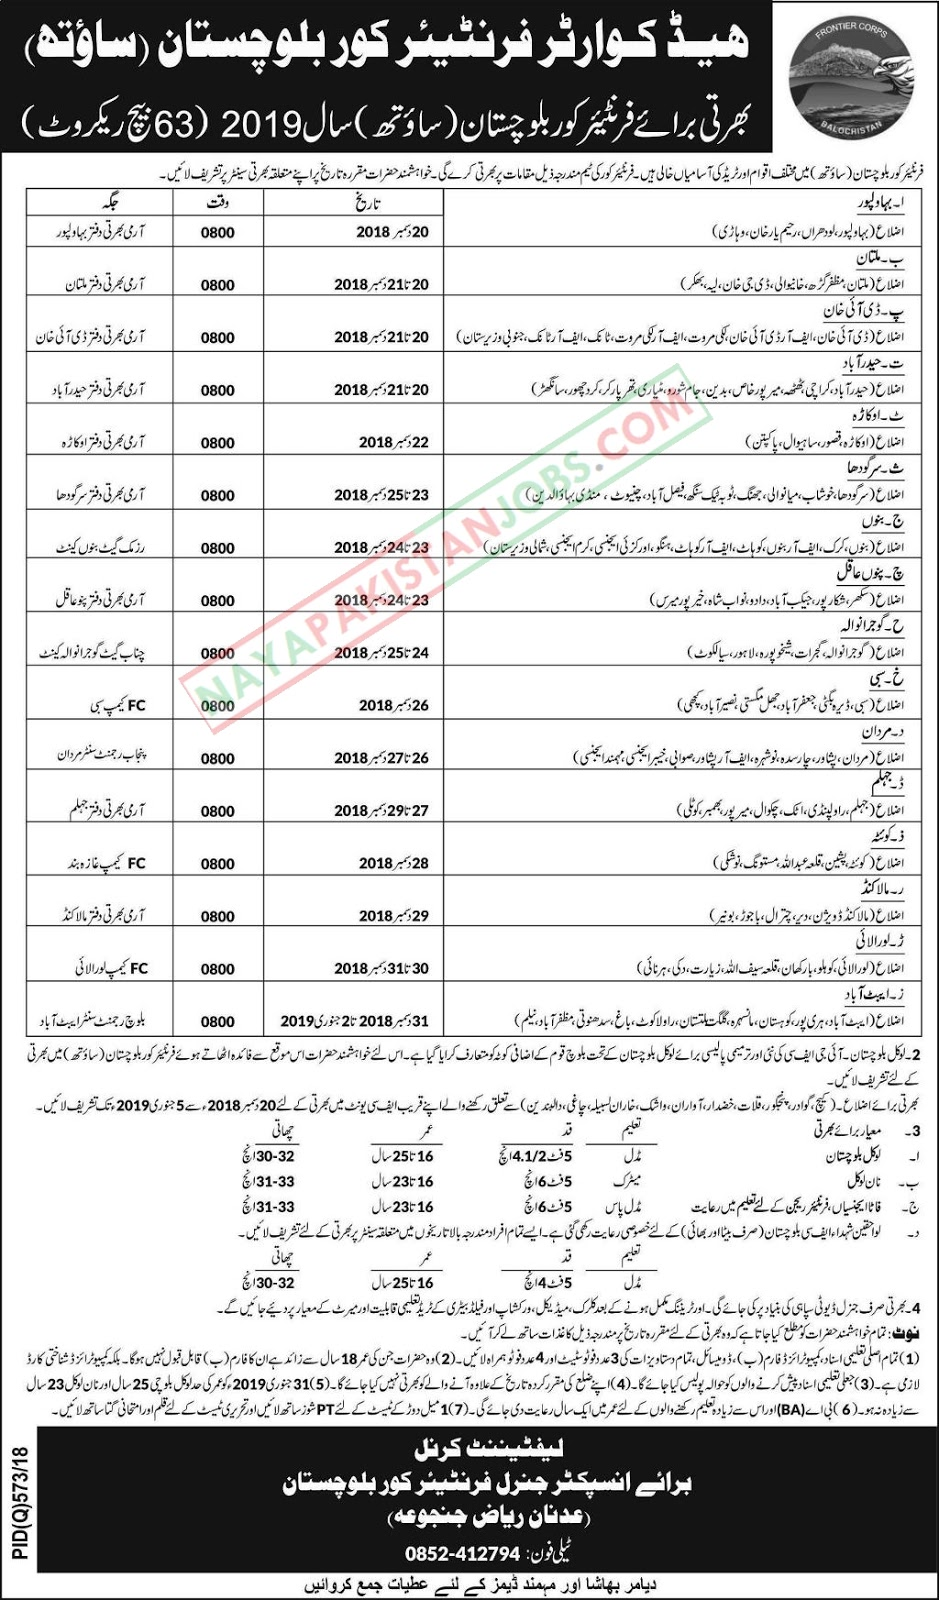 Fc balochistan jobs, Latest Vacancies Announced in Headquarter Frontier Corps Balochistan (South) for Year 2019 - Naya Pakistan